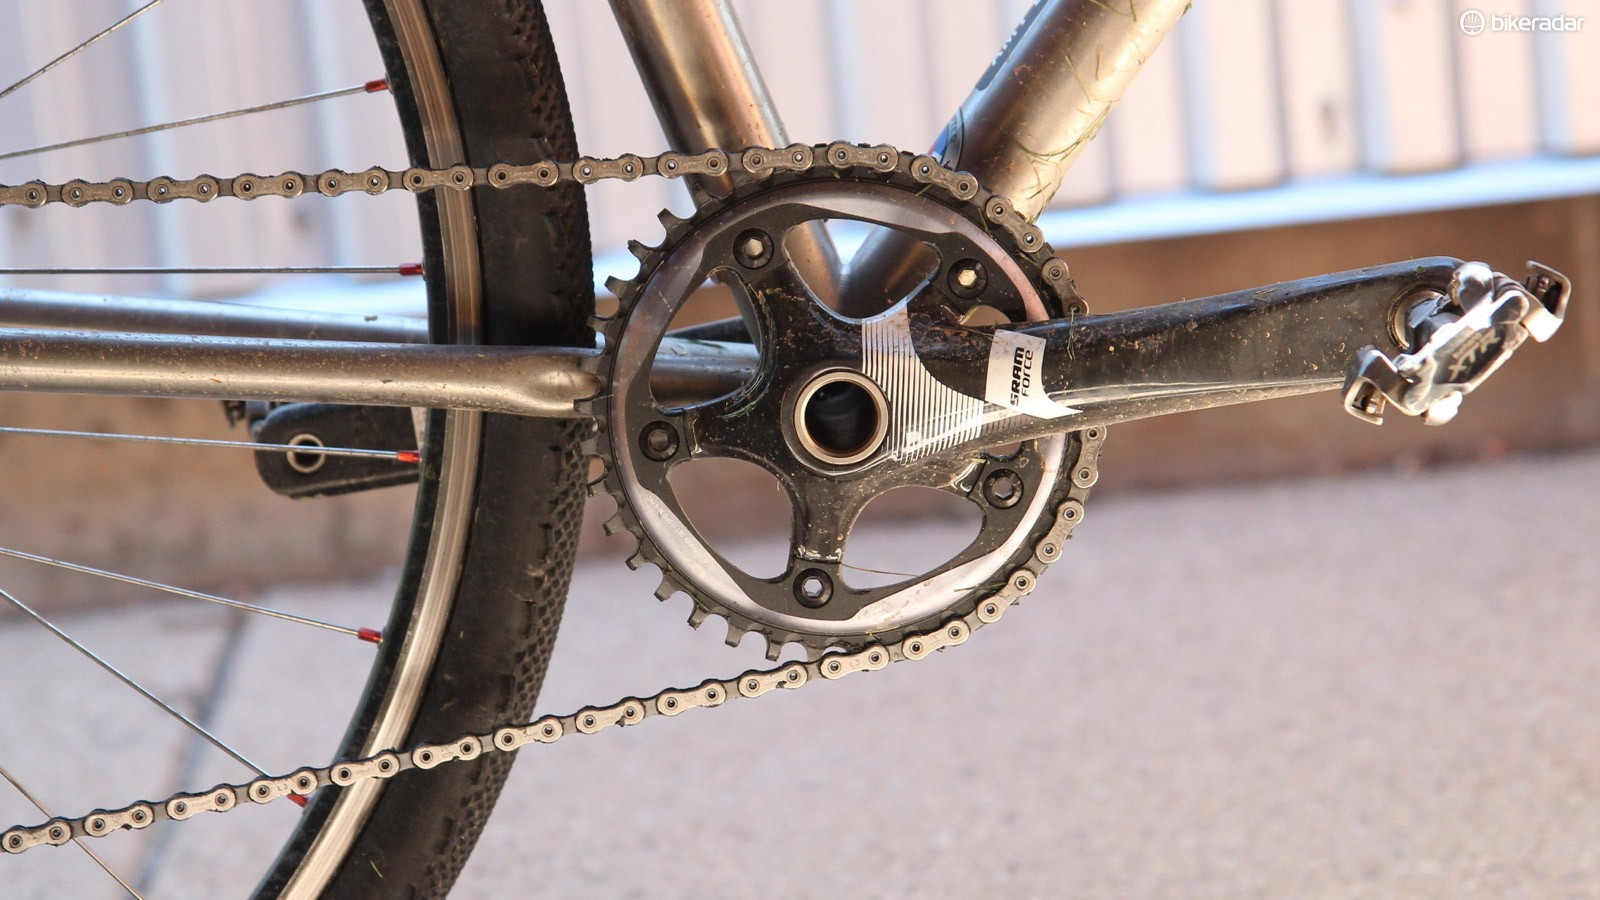 The second set of testing incorporated the CX1 X-Sync chain ring